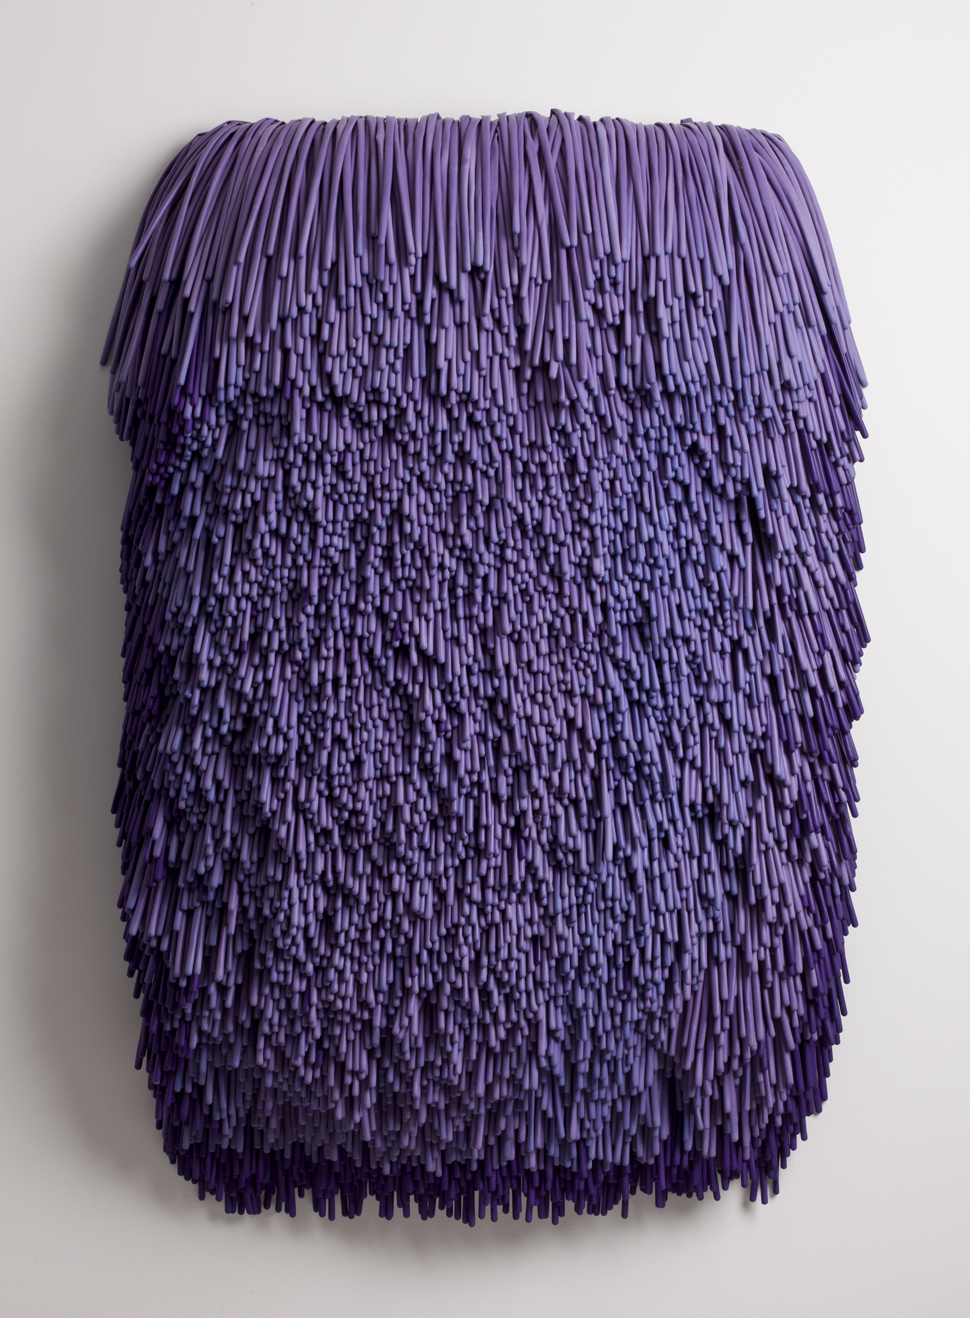 Julie Hoppner - Balloon Wall No. 2